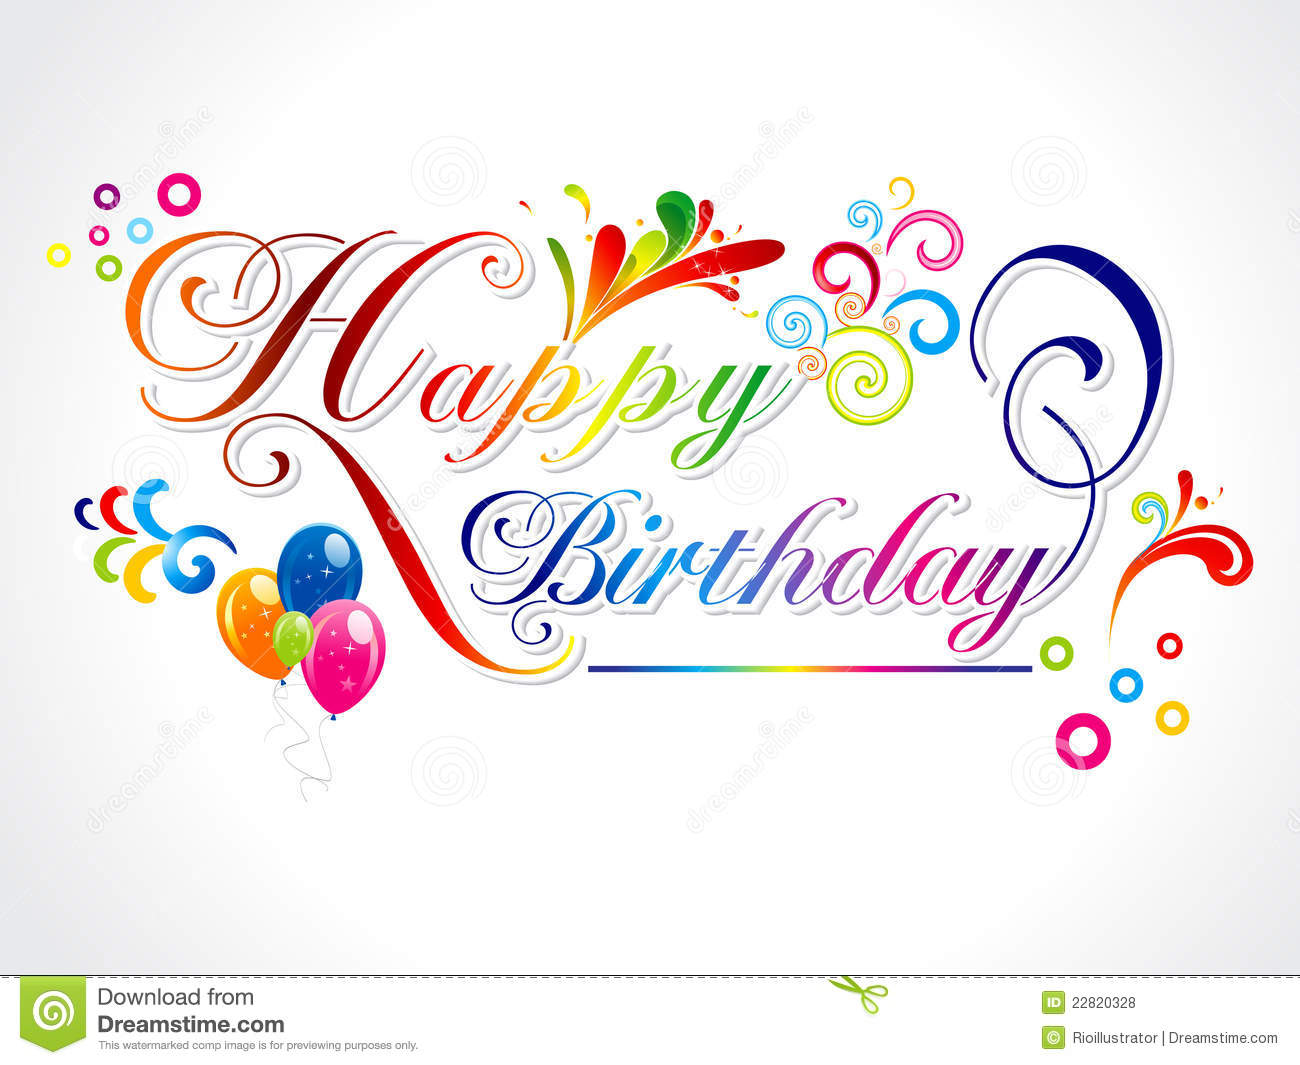 Birthday Card On Line Idas Ponderresearch Co